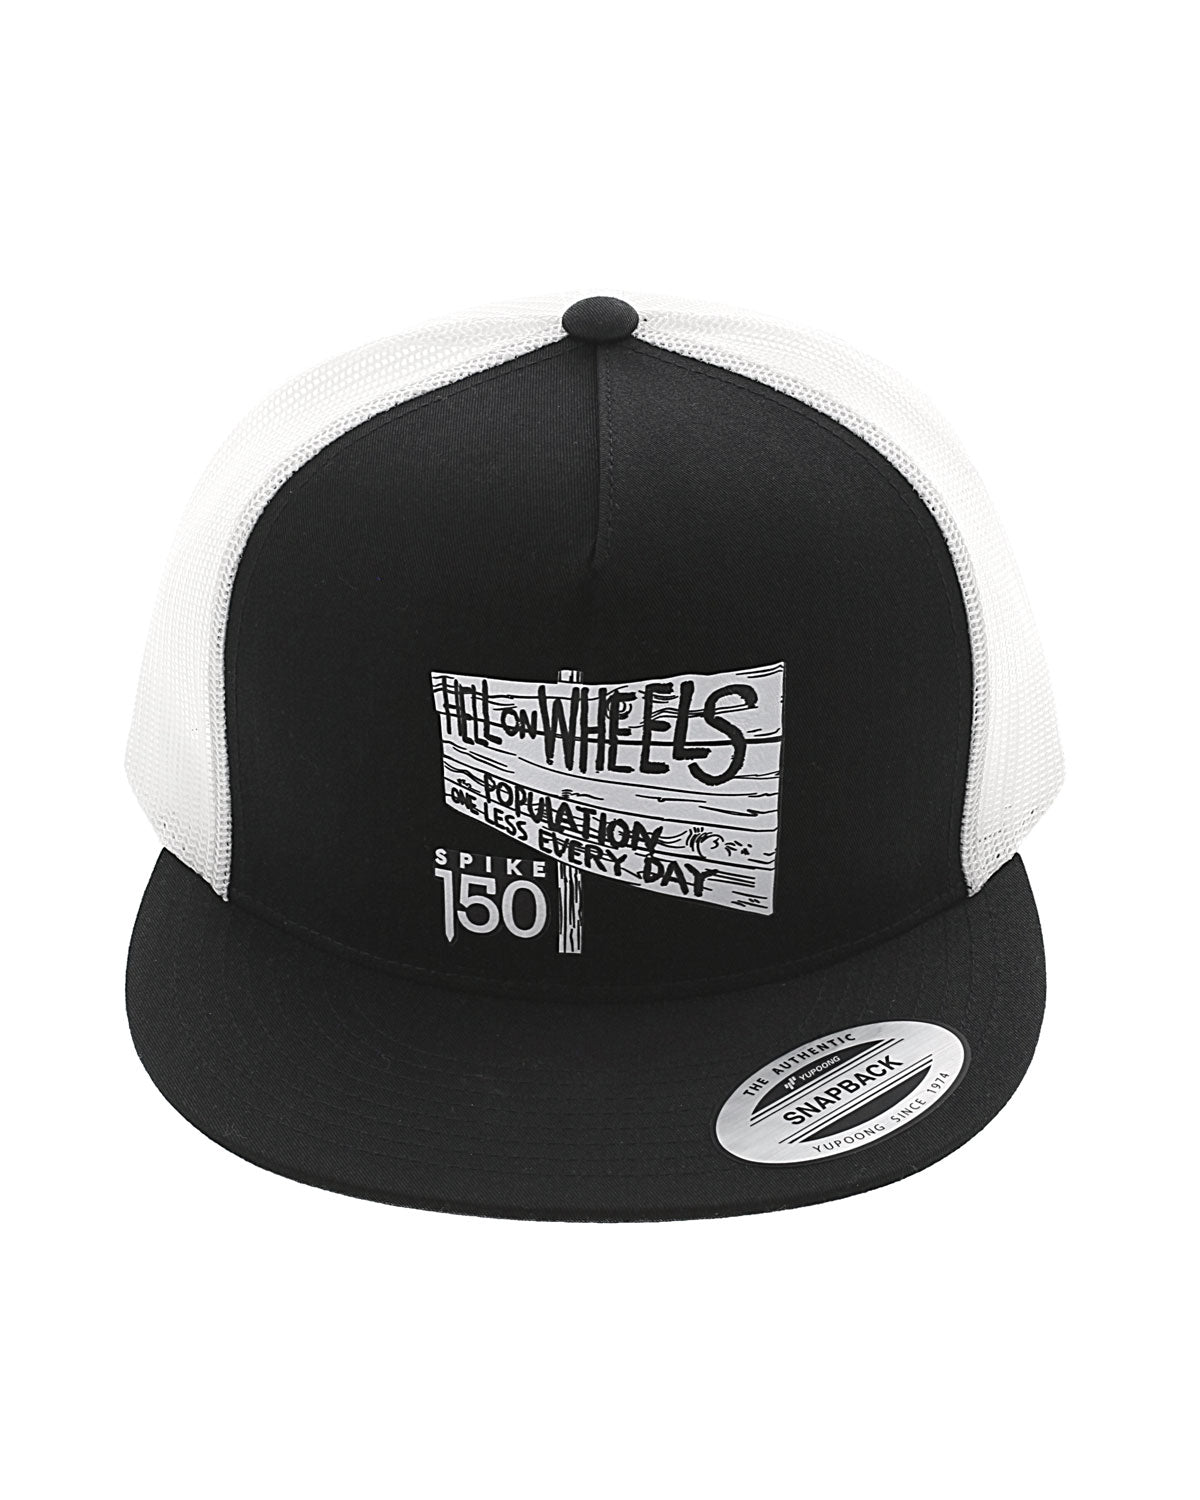 Hell on Wheels Trucker Hat